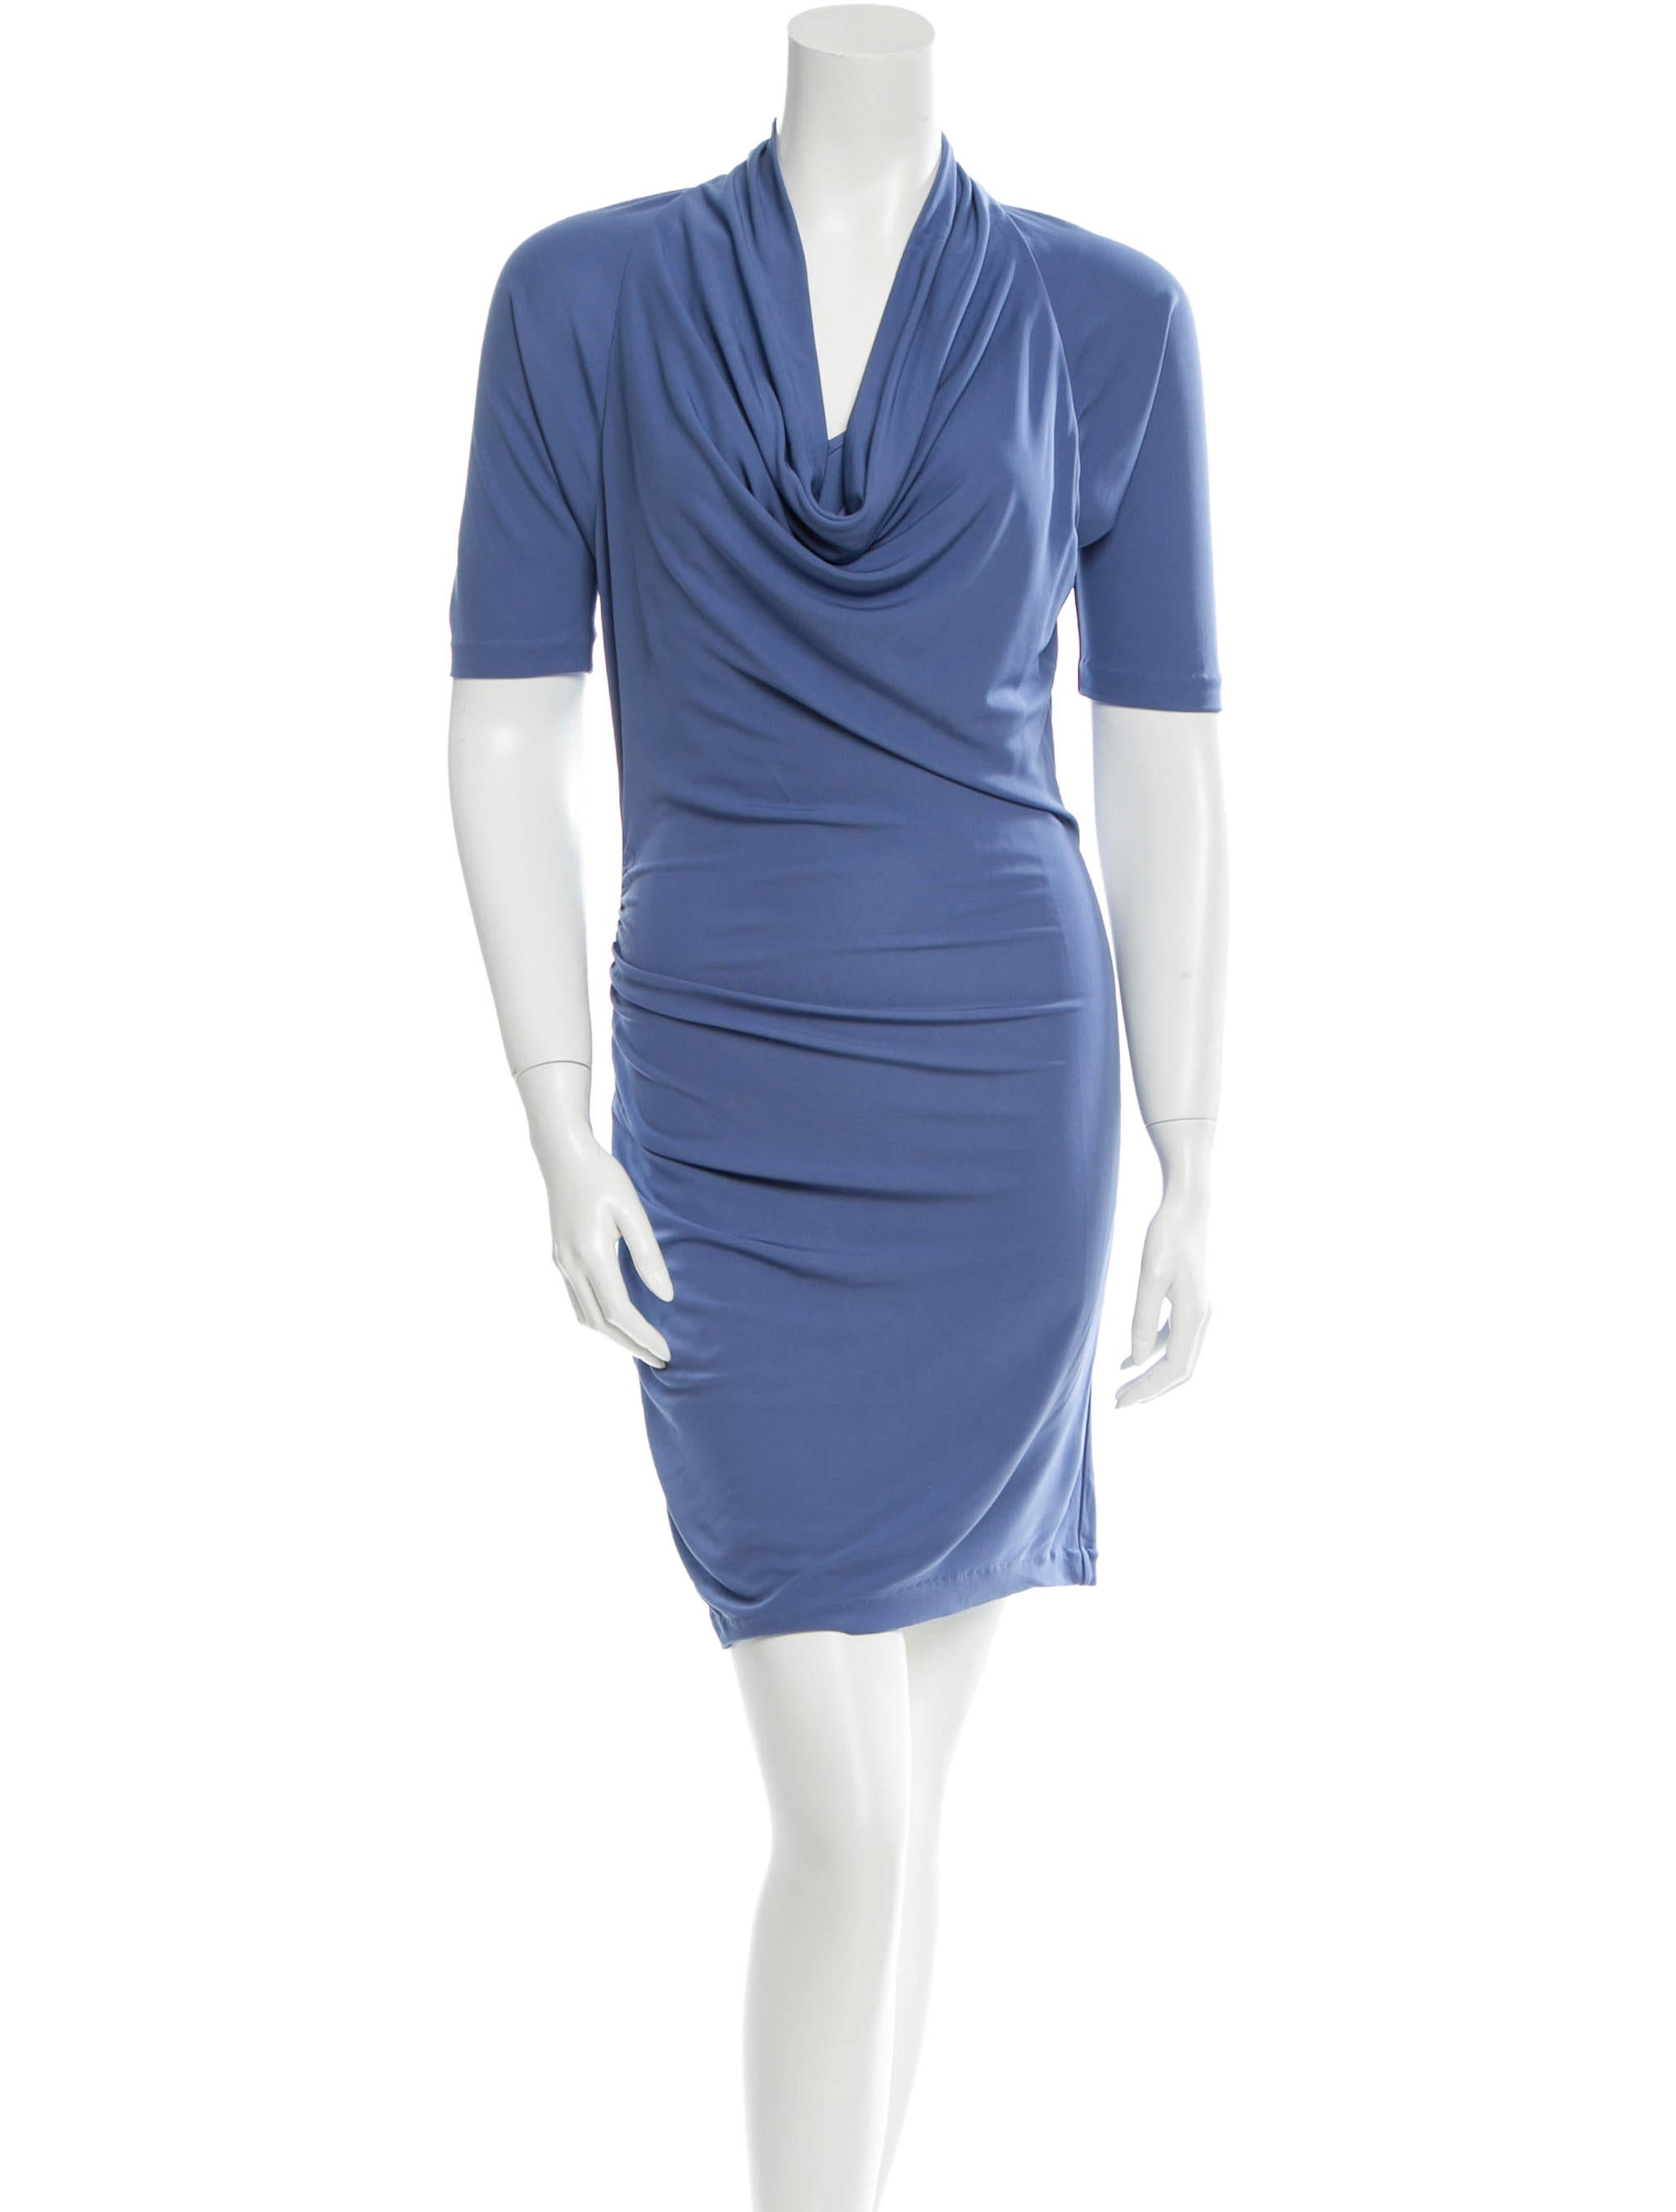 Halston heritage dress w tags clothing wh121970 the for Halston heritage shirt dress